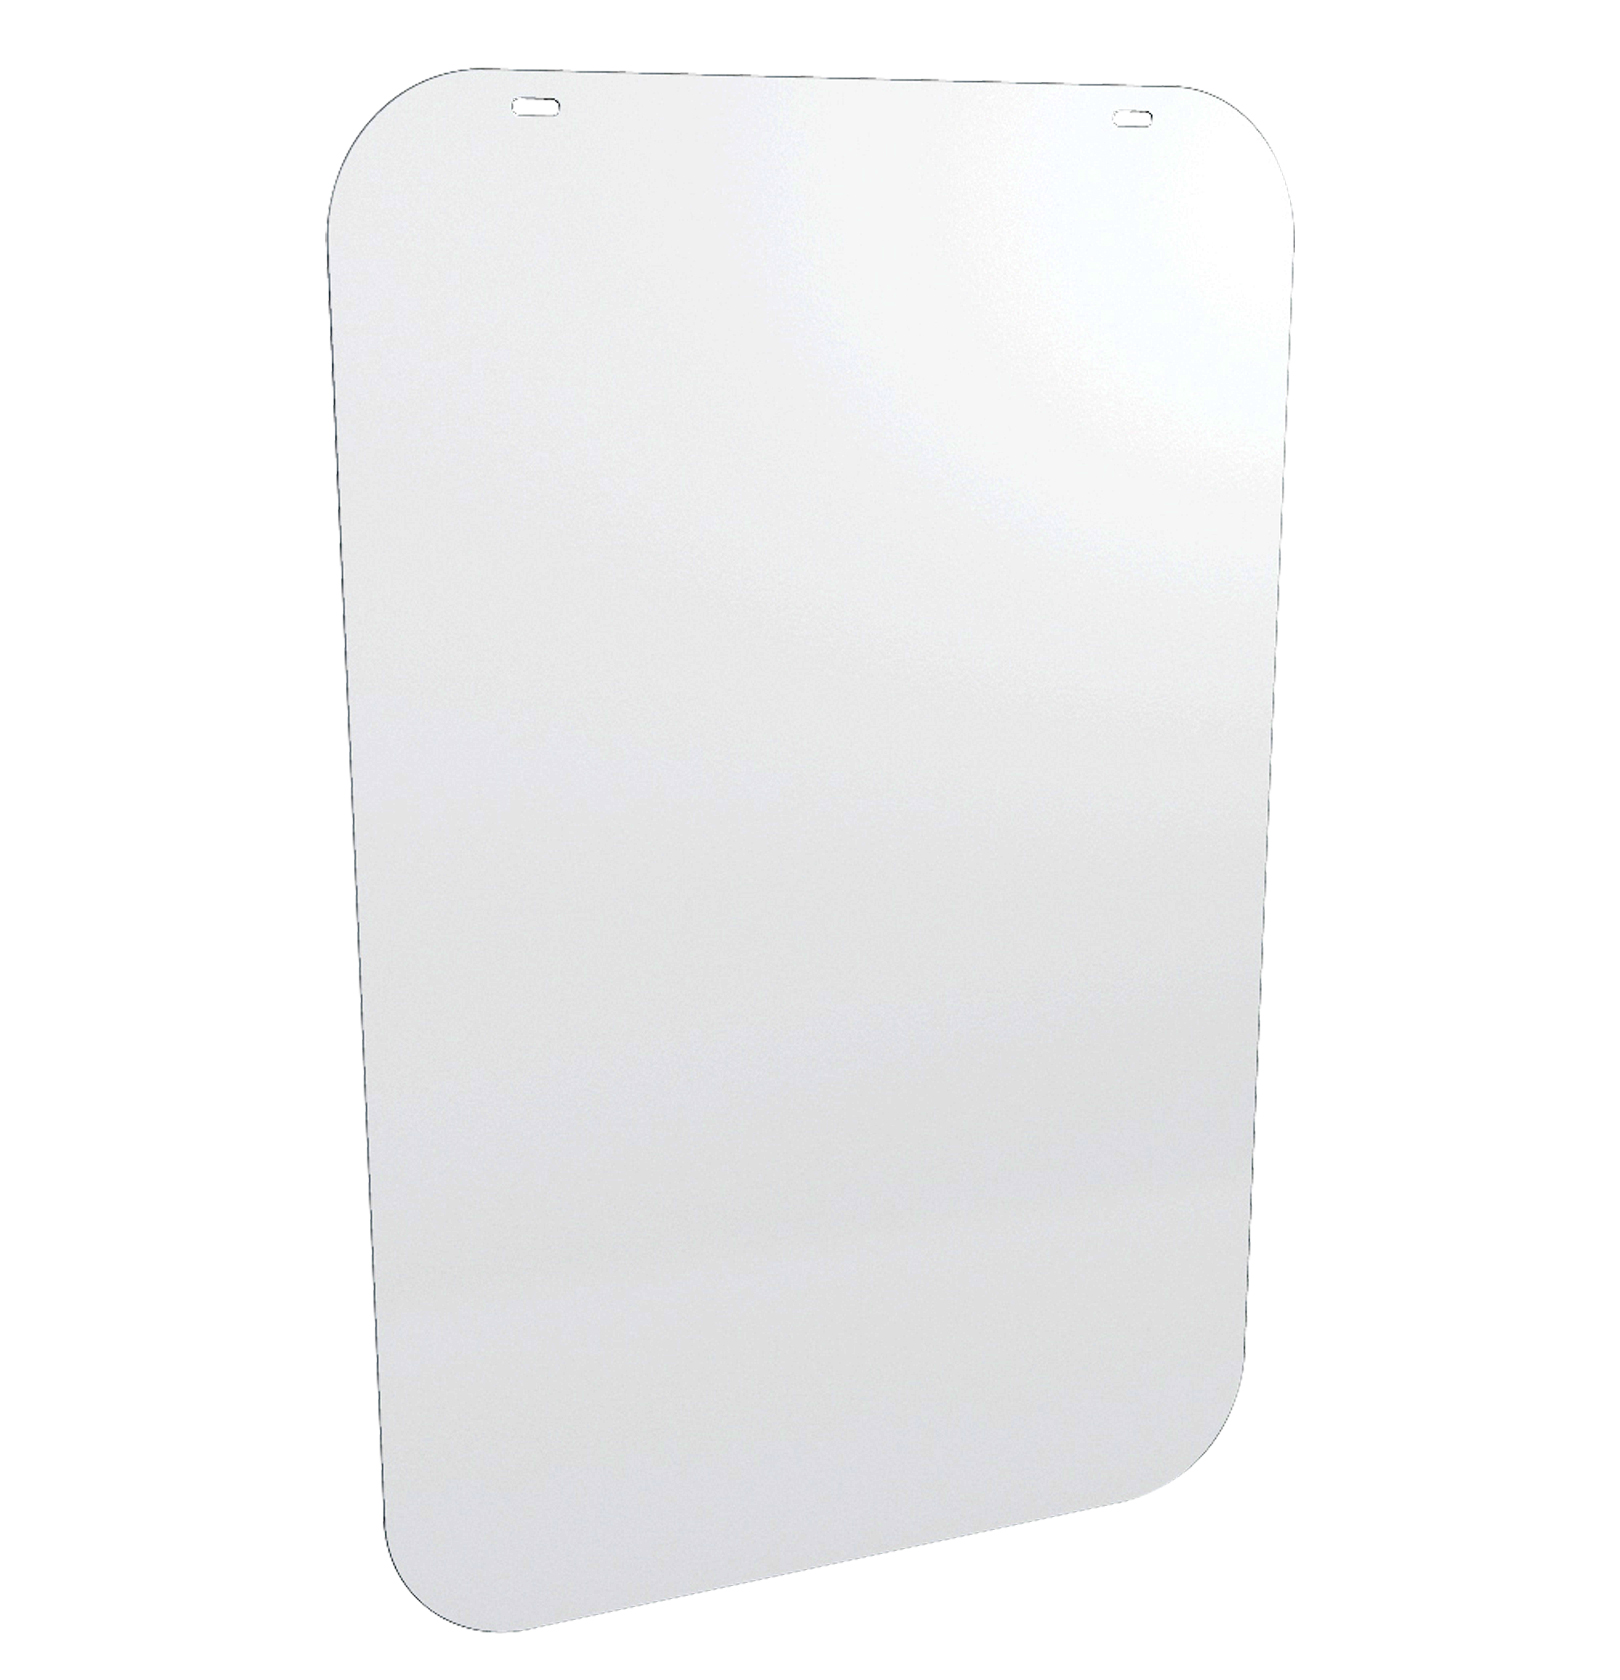 Plain White Panel for Swinger